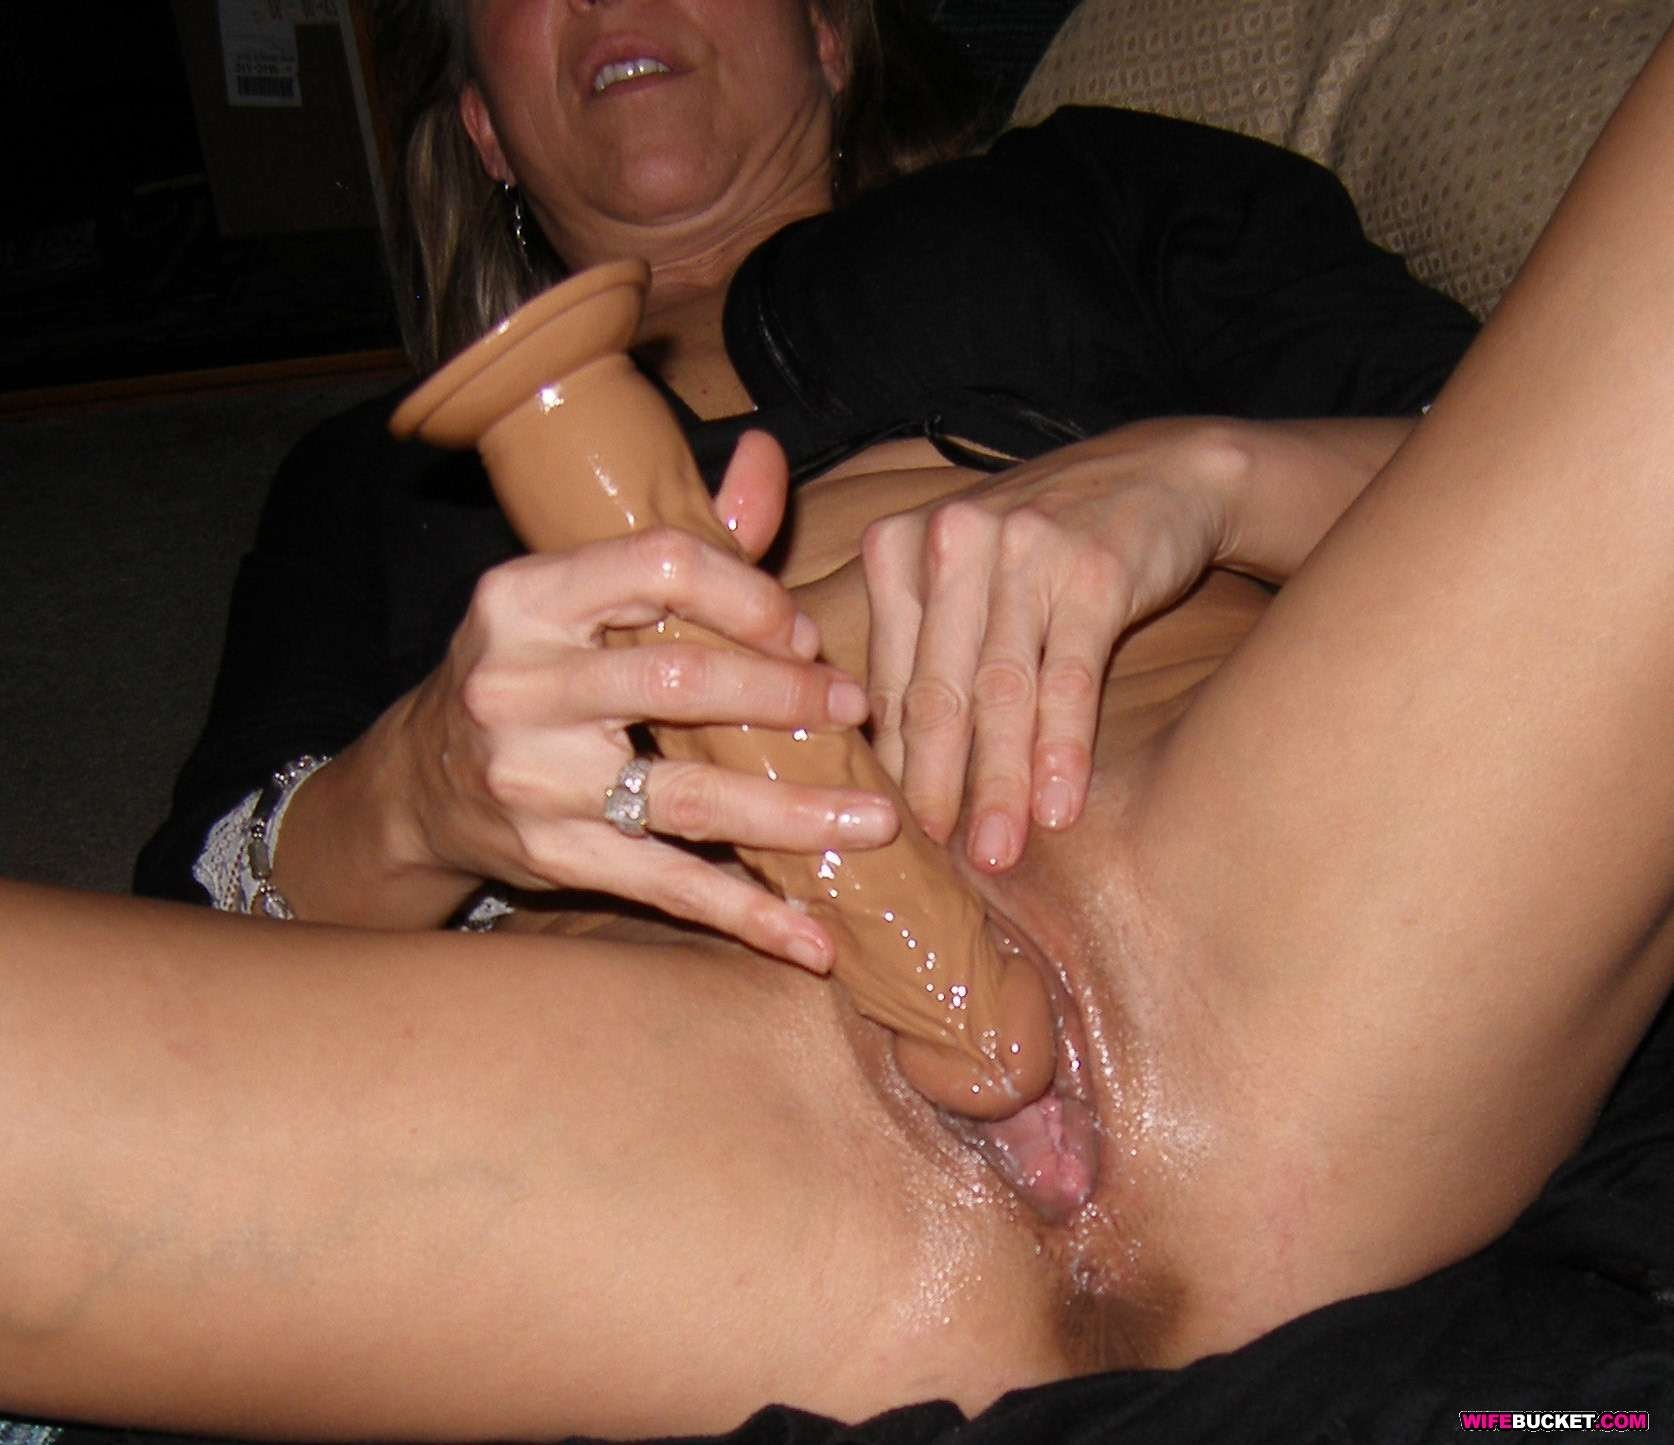 sexy in public places most powerful anal vibrator